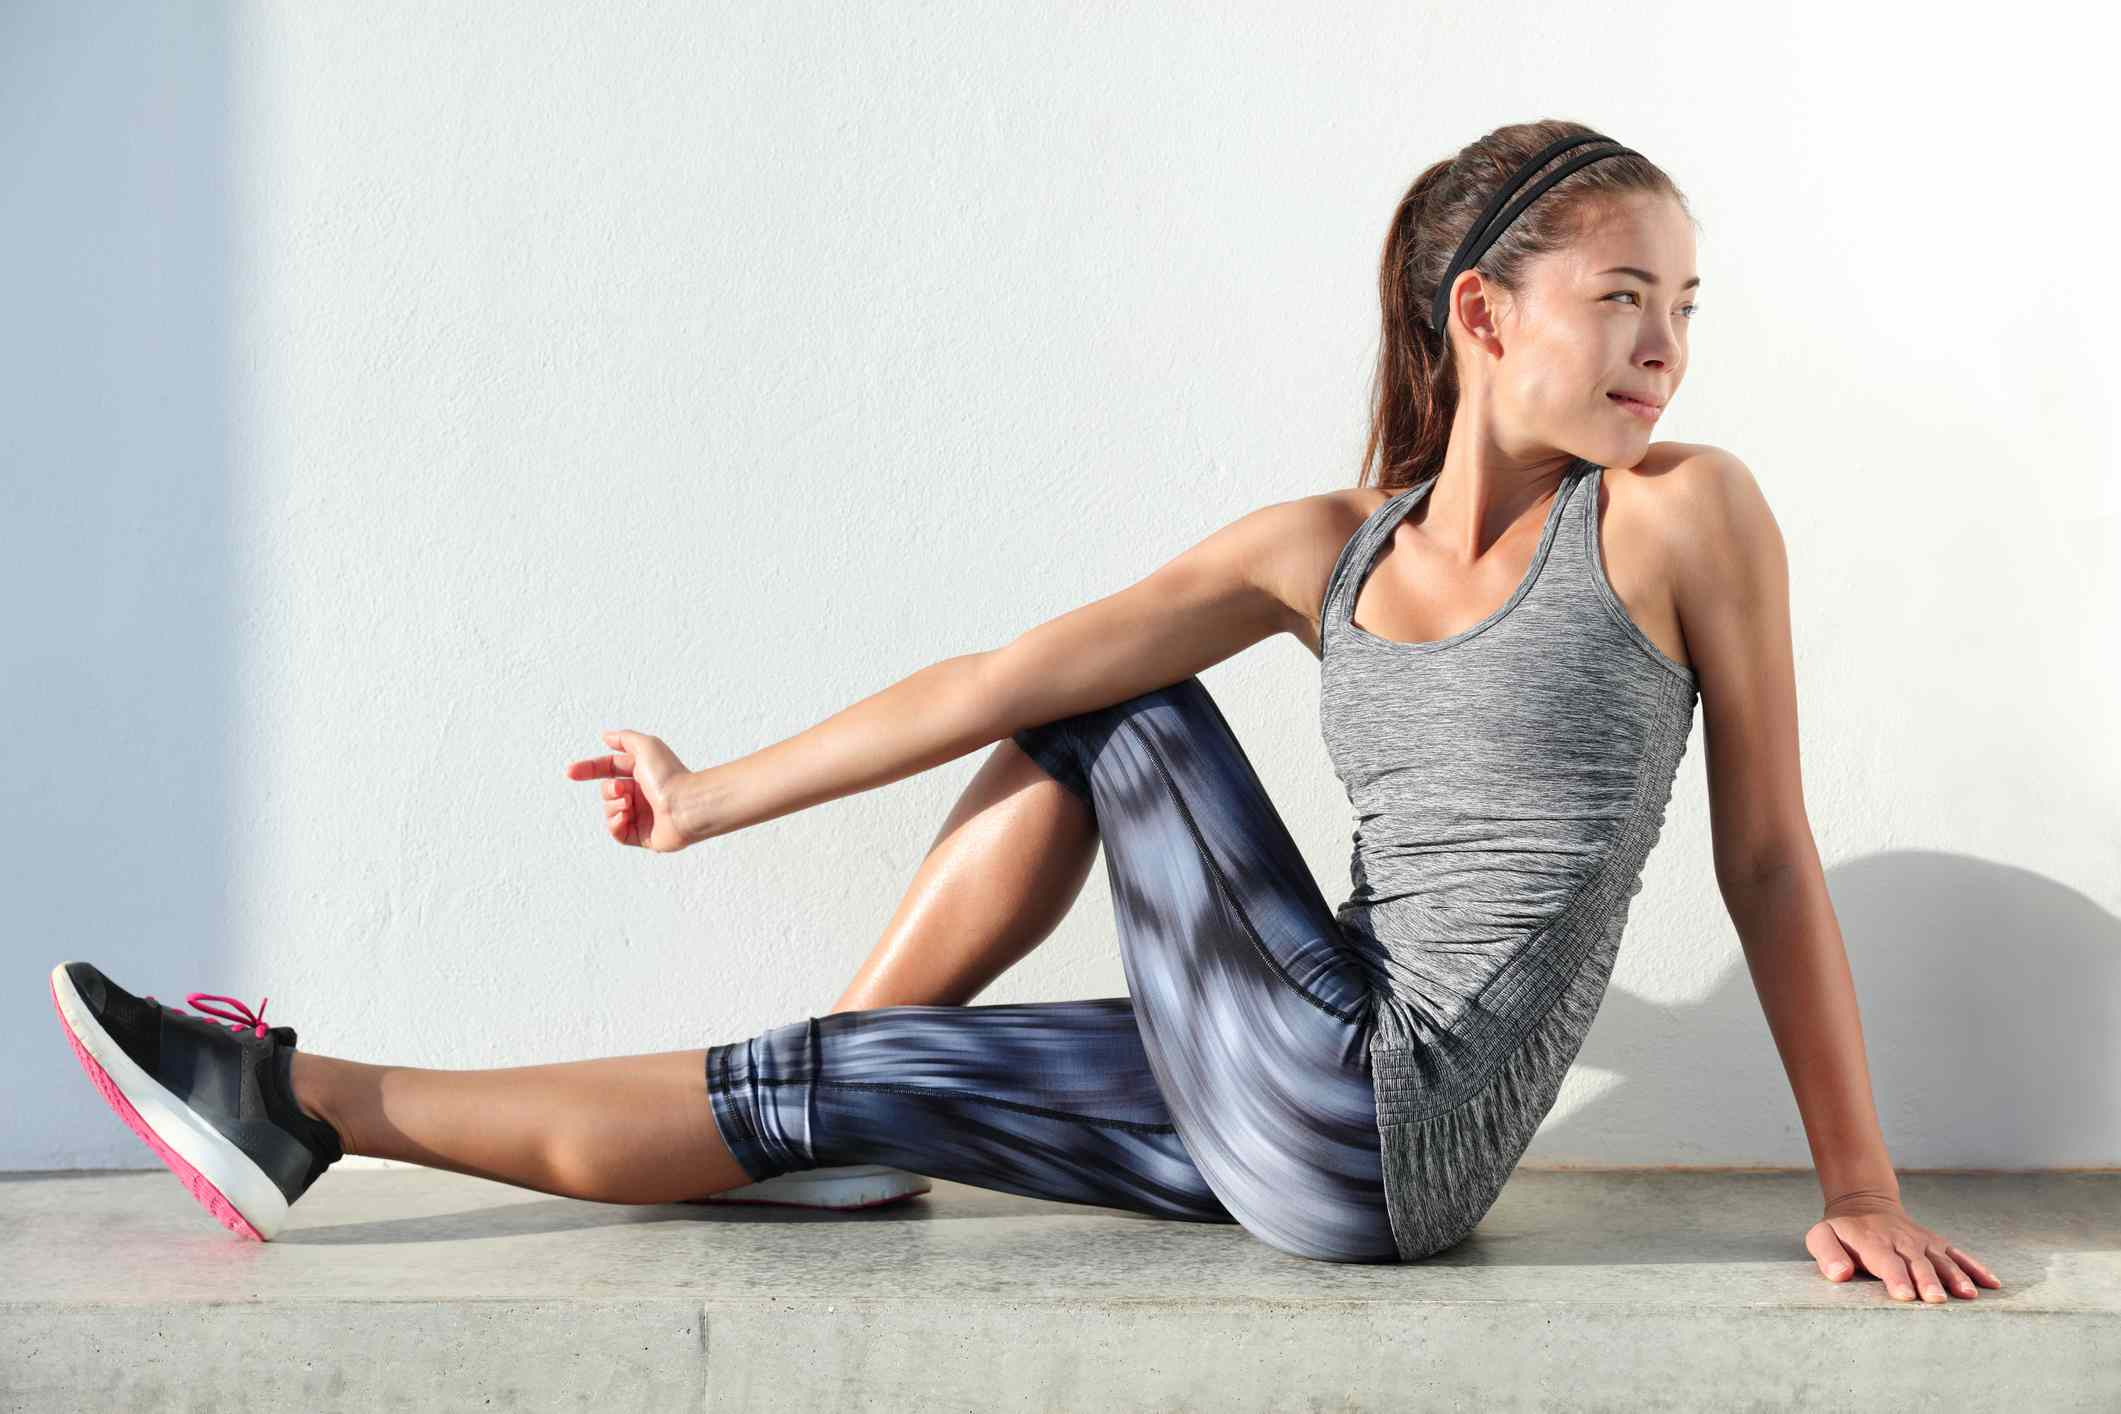 Fitness woman stretching legs doing pilates leg stretches exercises